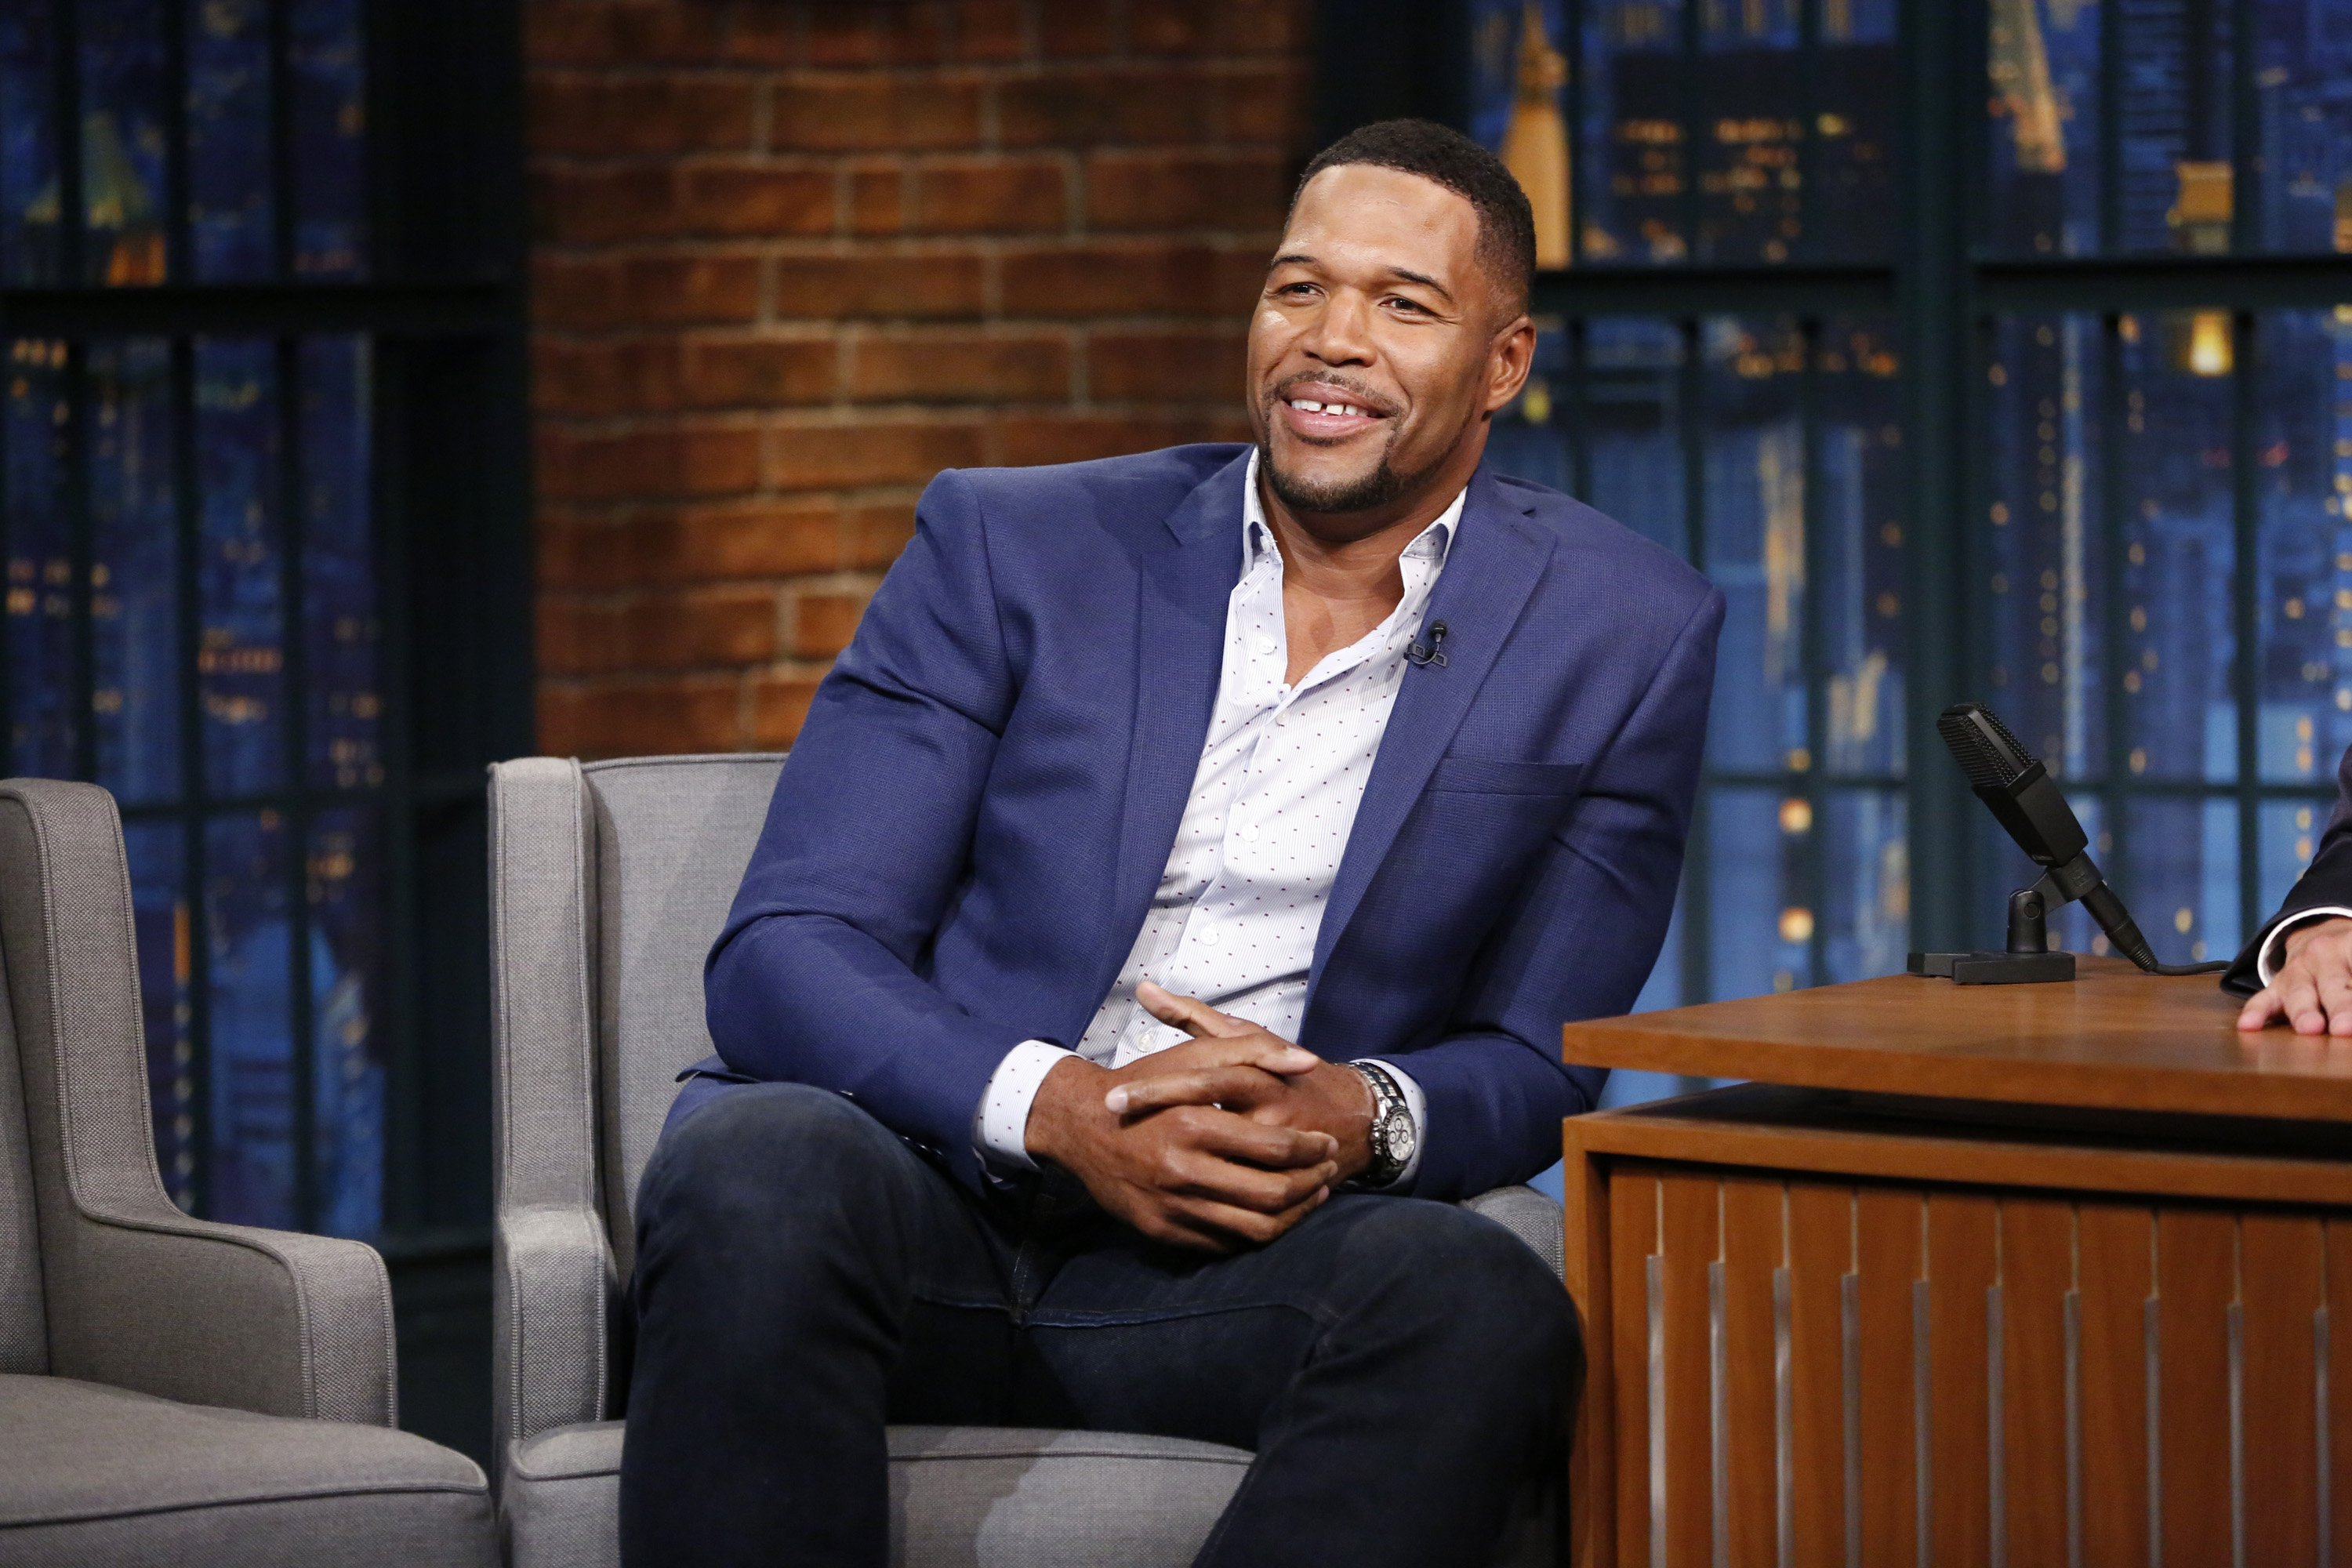 Michael Strahan during an interview on Late Night With Seth Meyers October 2, 2017 | Photo: Getty Images